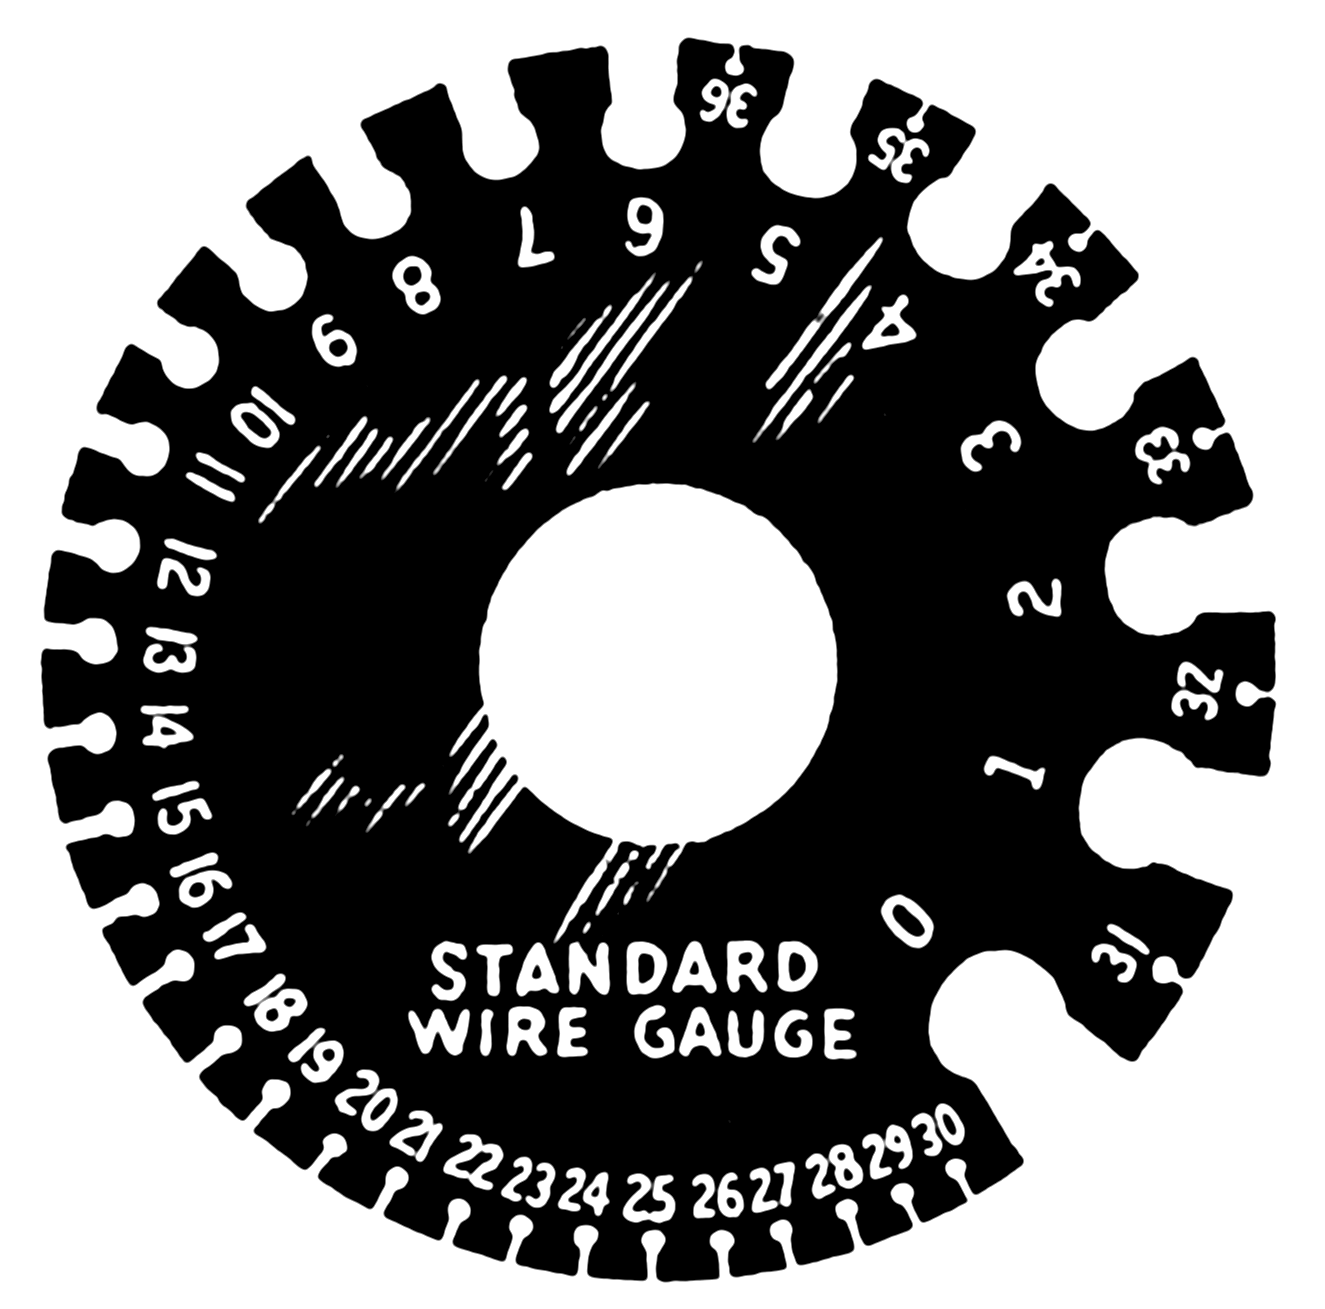 File:Wire gauge (PSF).png - Wikipedia, the free encyclopedia